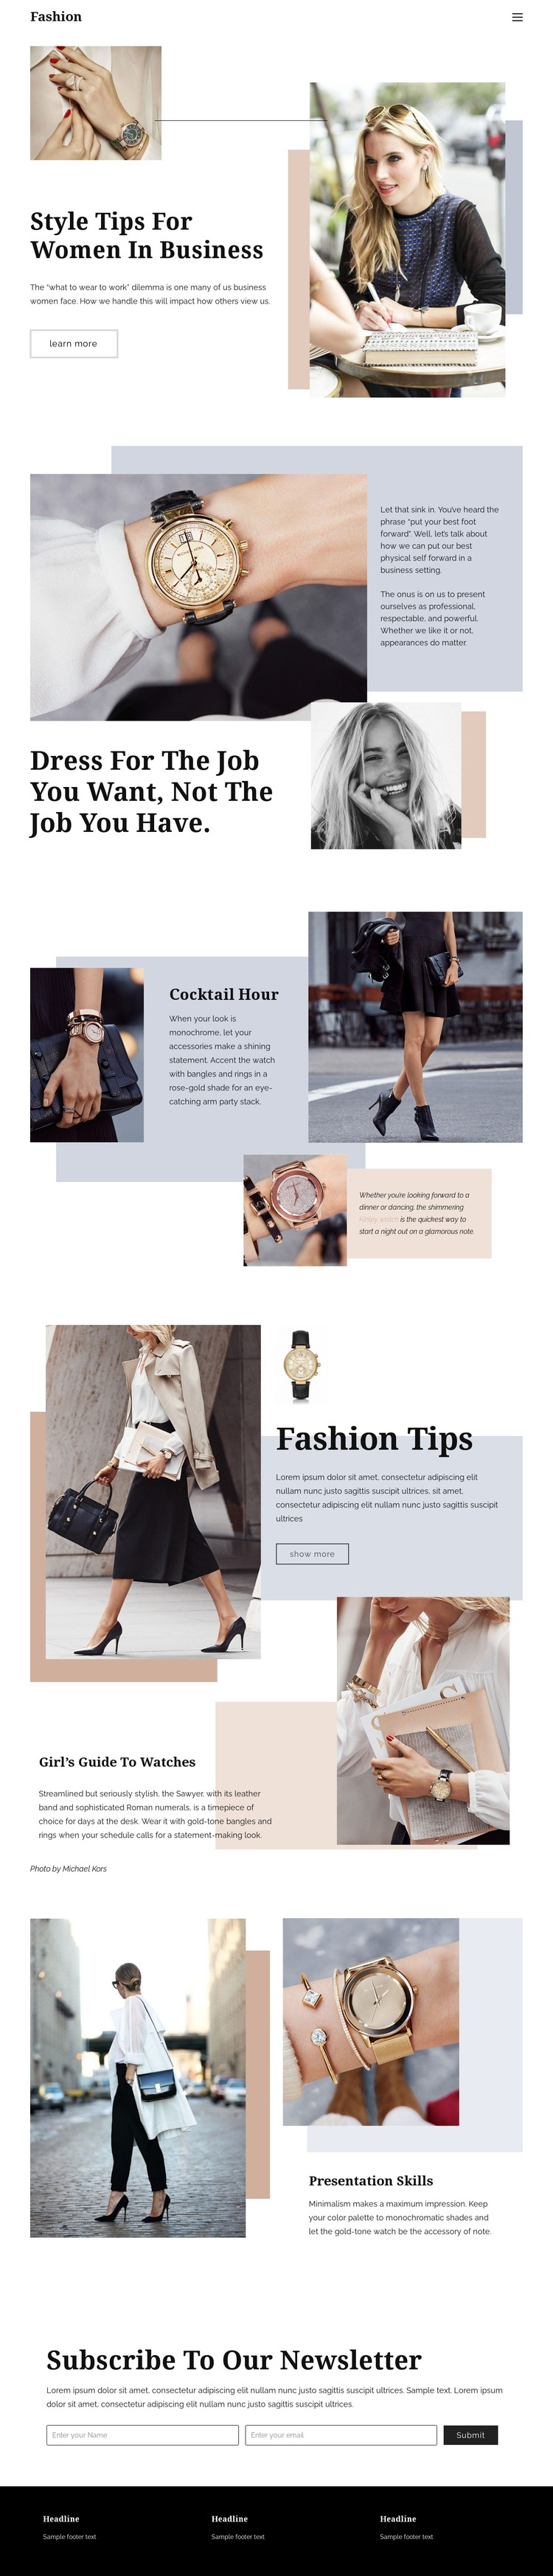 Fashion tips CSS Template